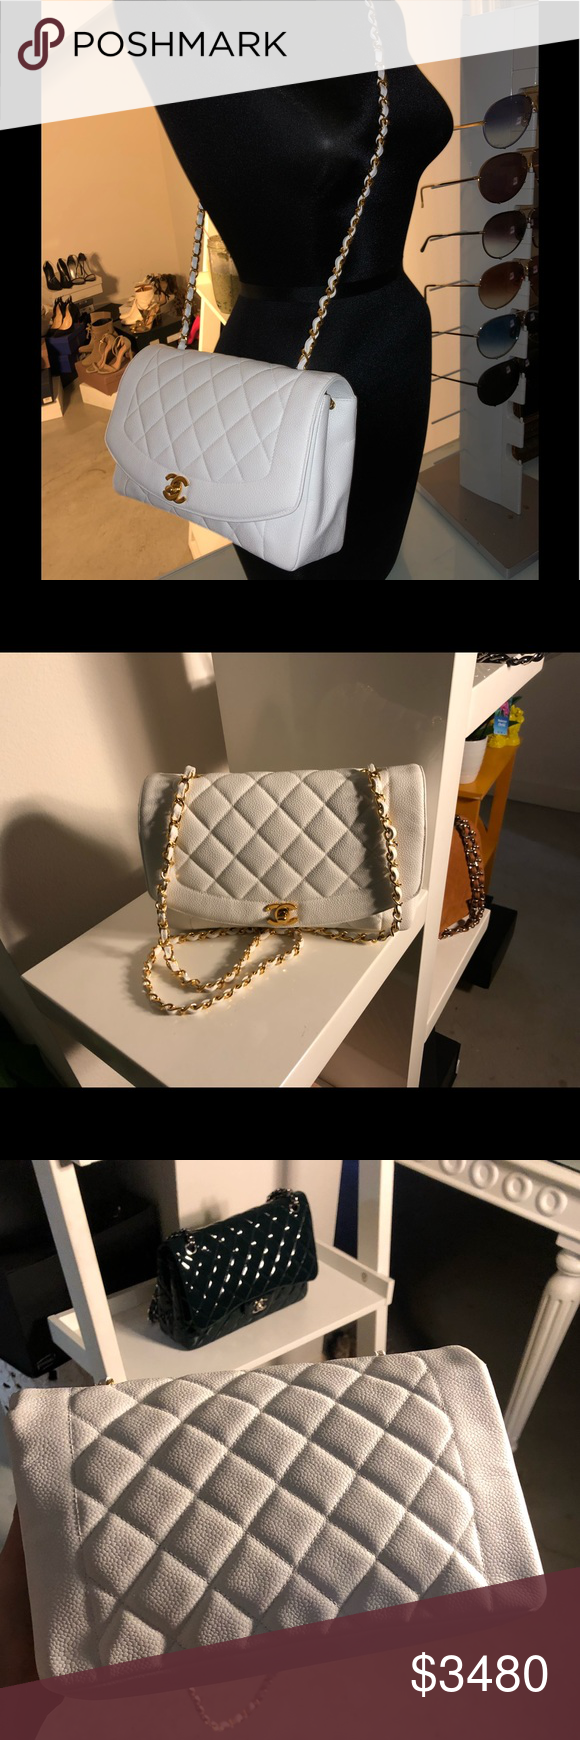 """d0518b872b7438 Auth CHANEL White Caviar """"Diana"""" Single Flap Beautiful 100% Authentic CHANEL  Timeless White"""